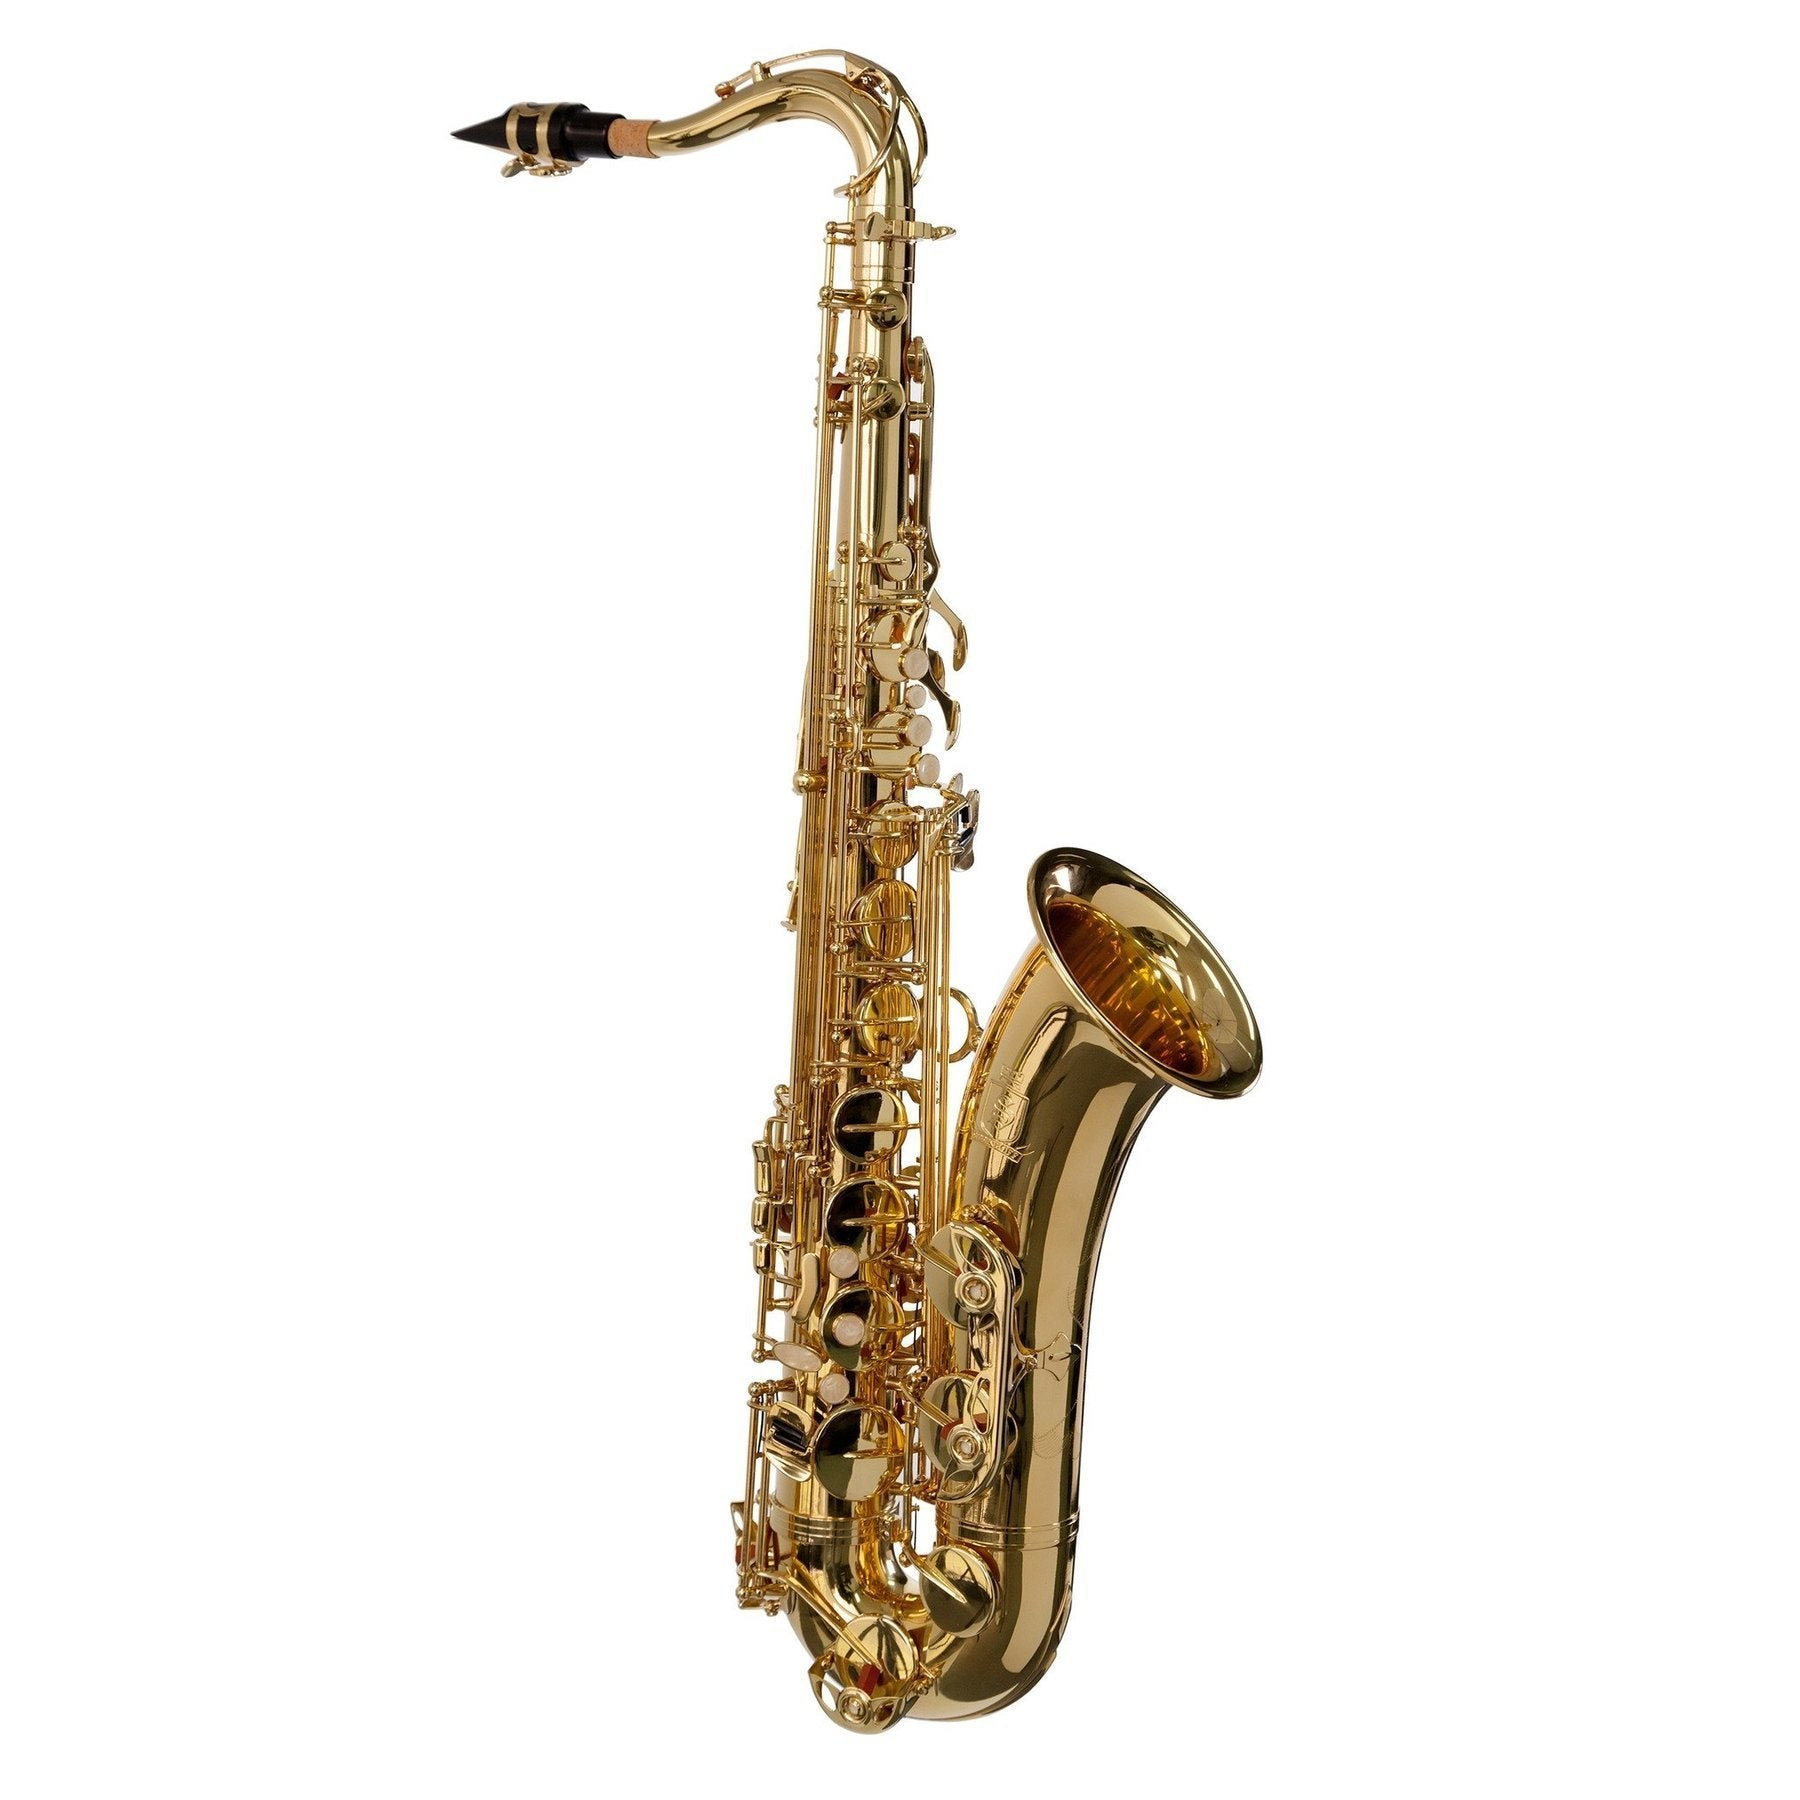 Steinhoff Advanced Student Tenor Saxophone (Gold)